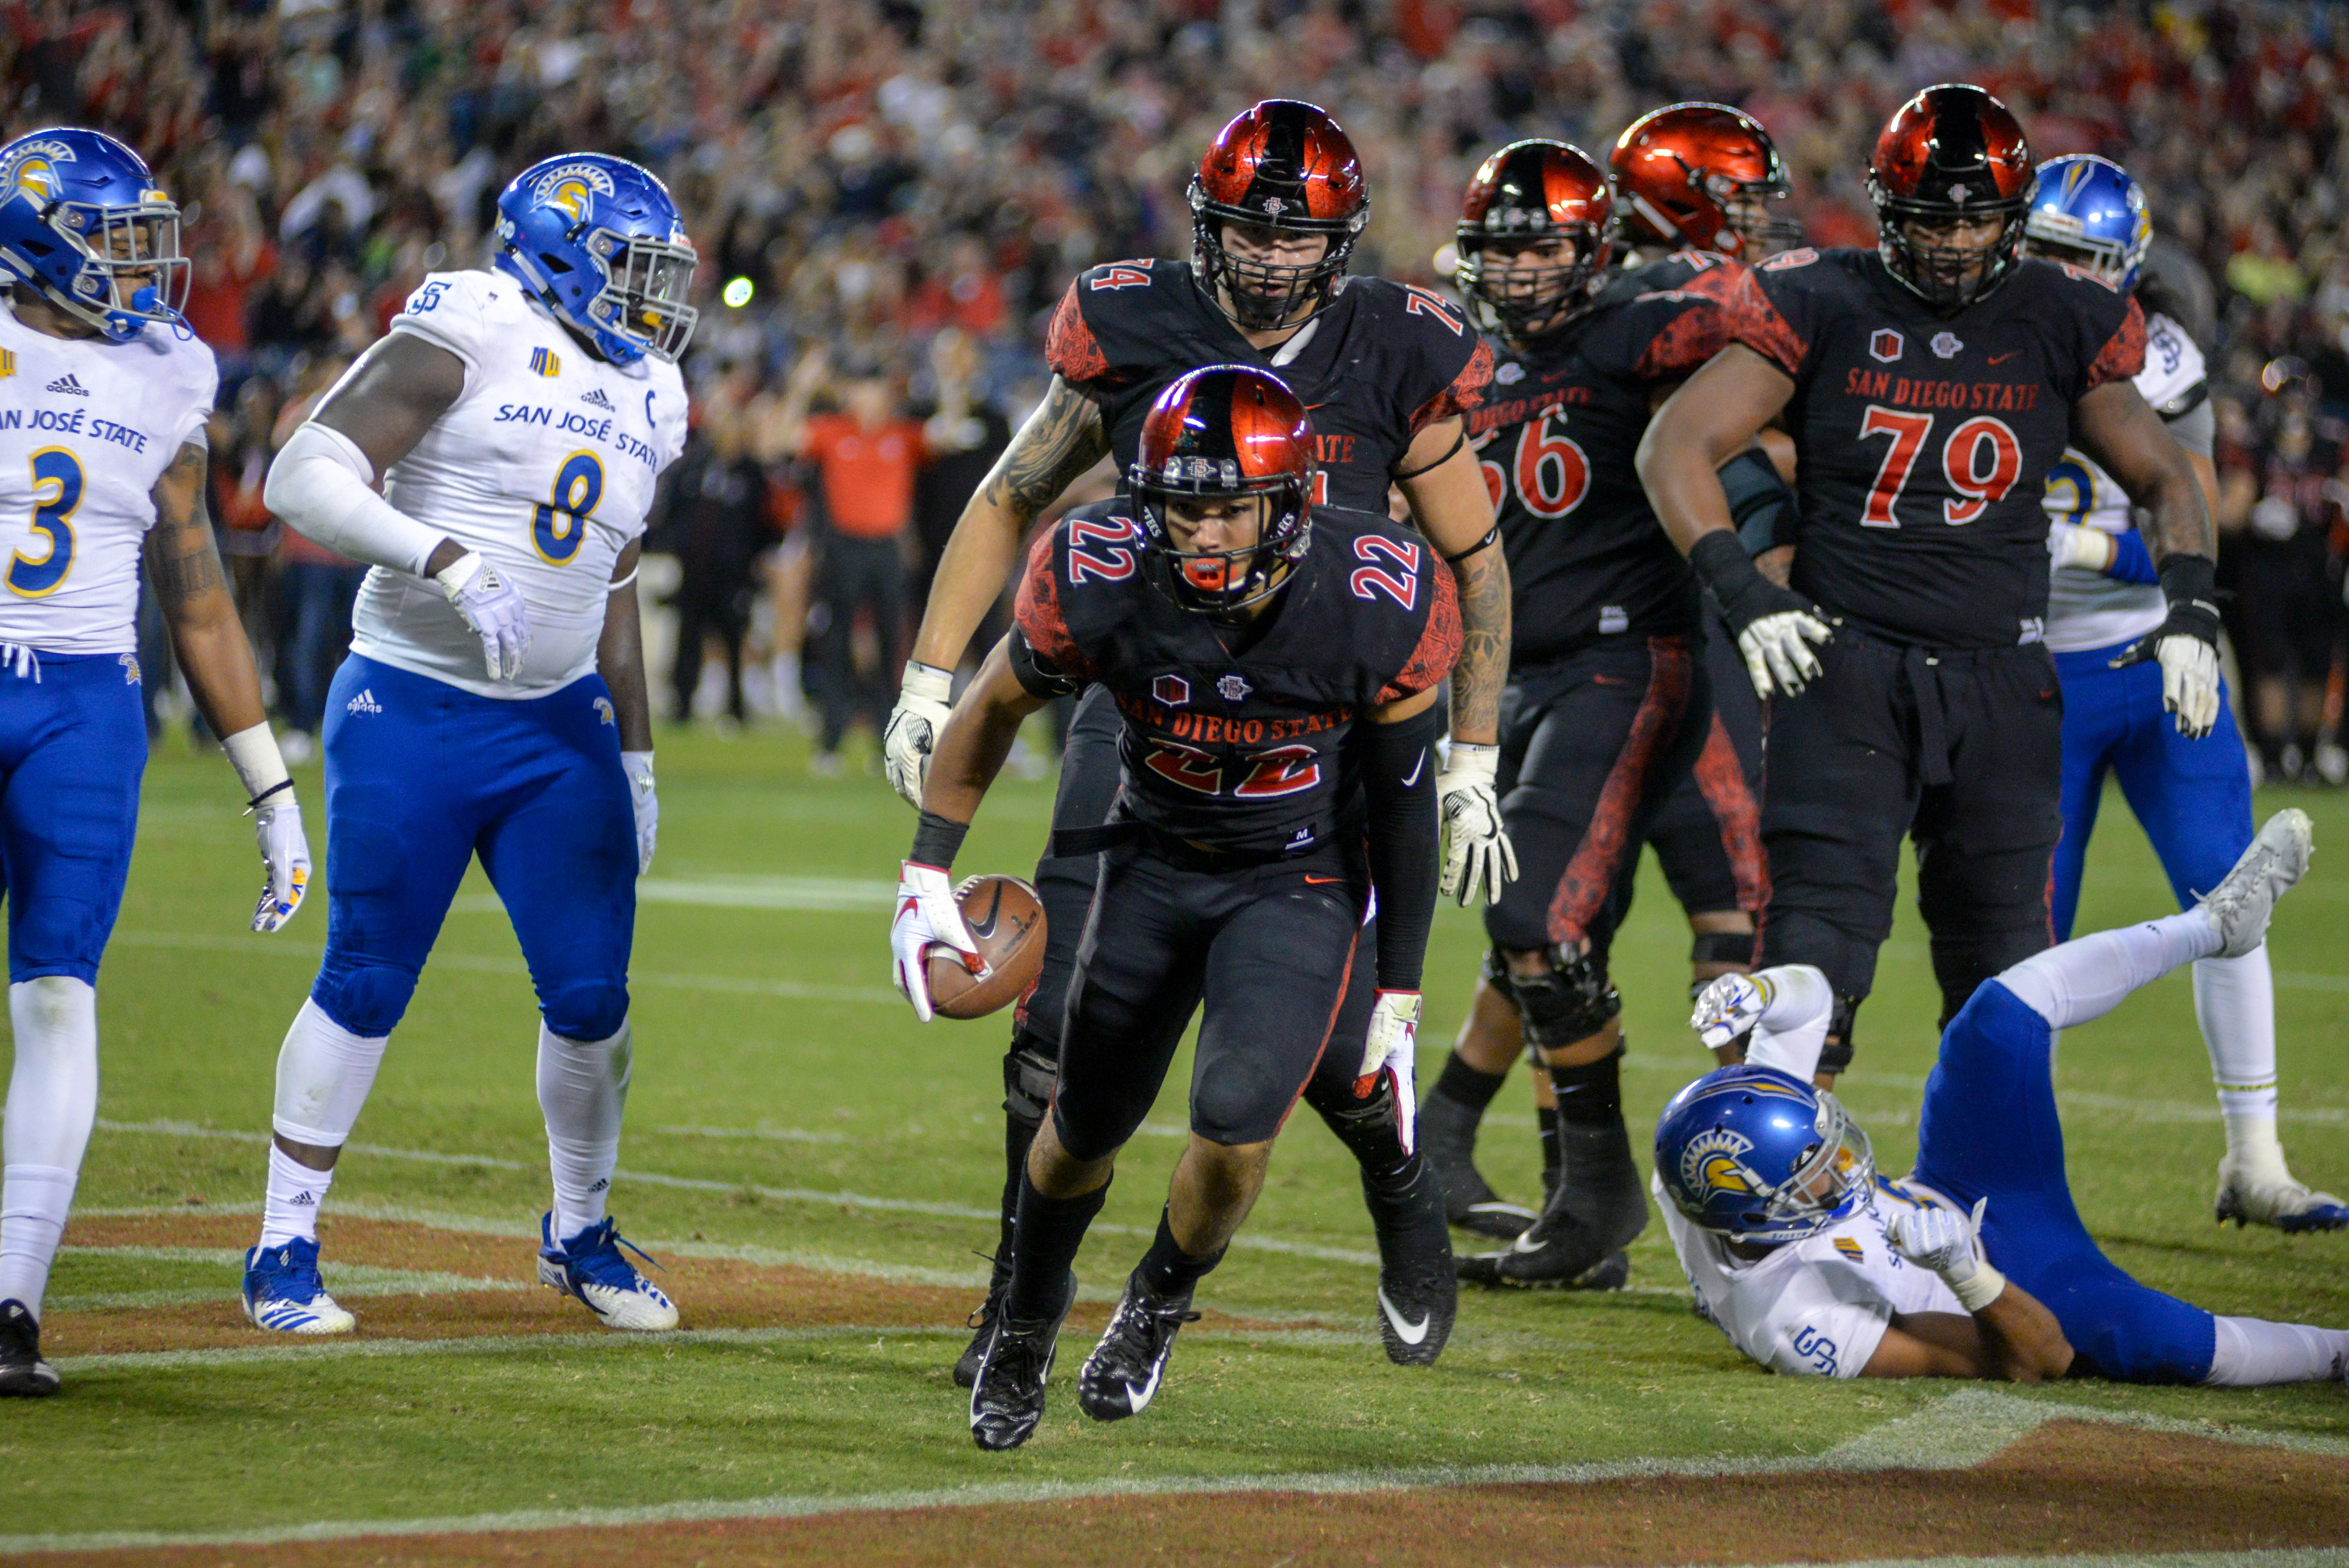 Chase Jasmin #22 of the San Diego State Aztecs celebrates after scoring a touchdown in the first half against the San Jose State Spartans at SDCCU Stadium on October 20, 2018 in San Diego, California. (Photo by Kent Horner/Getty Images)